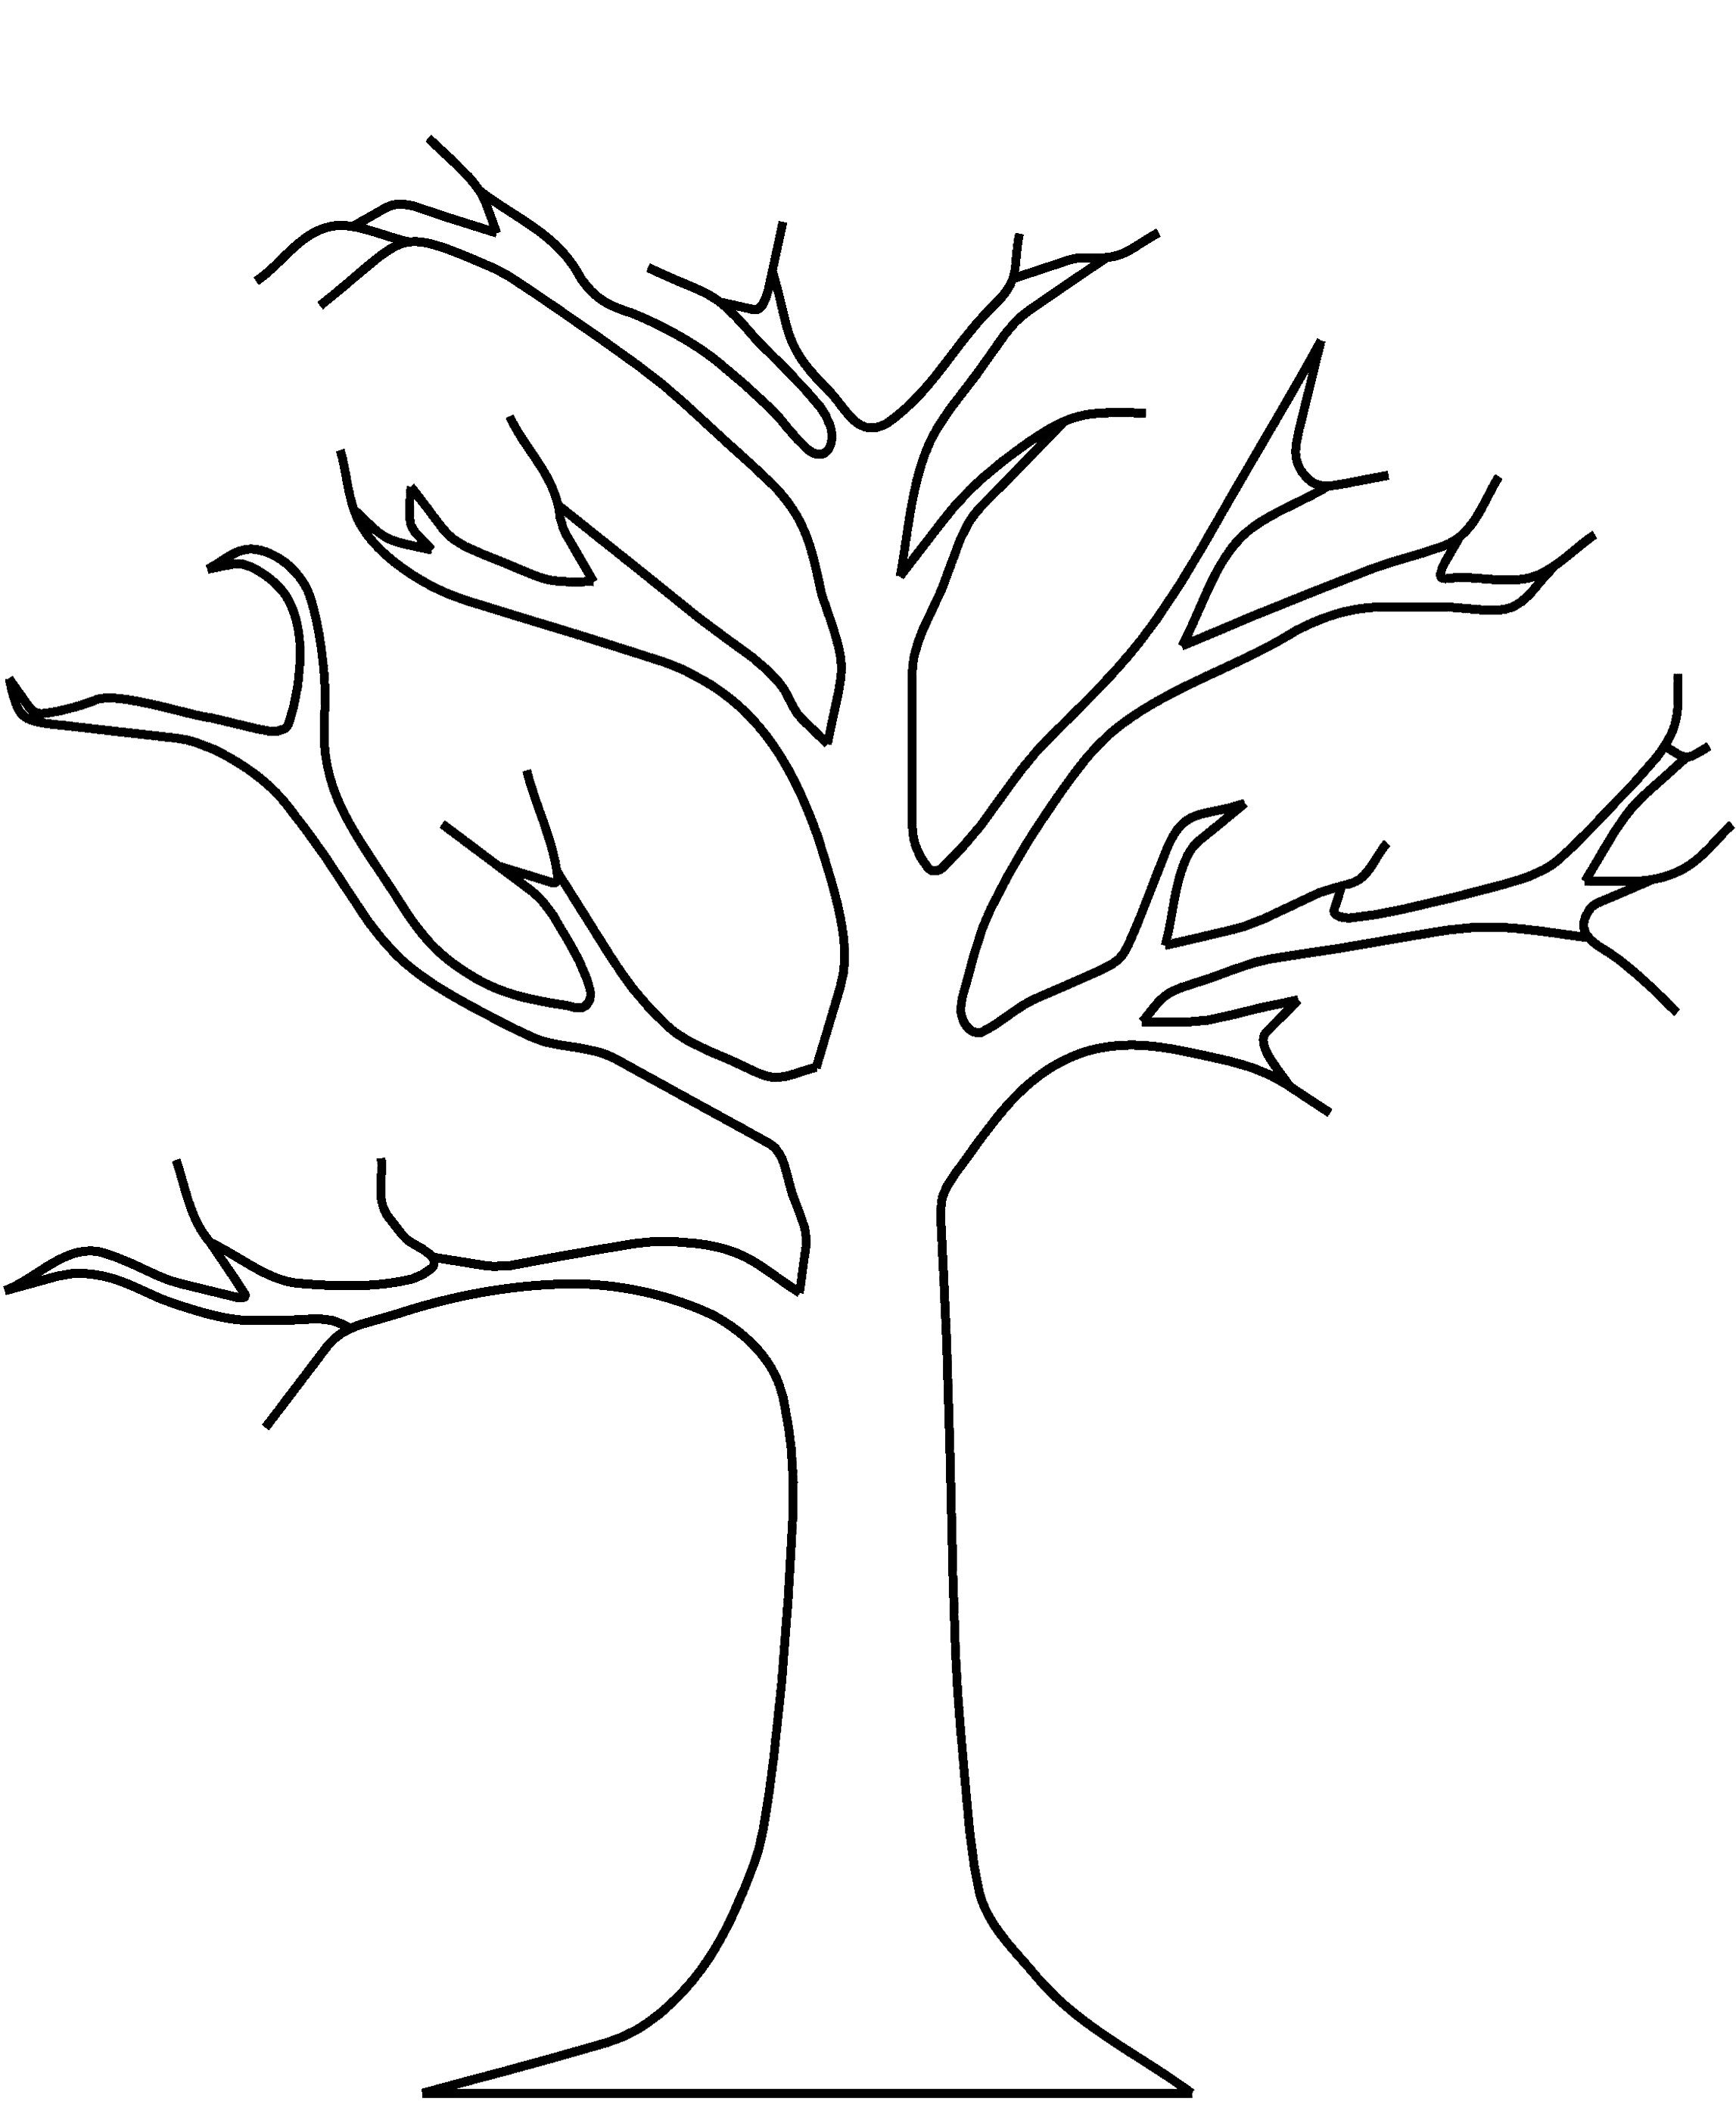 autumn tree coloring pages autumn pinterest apple tree